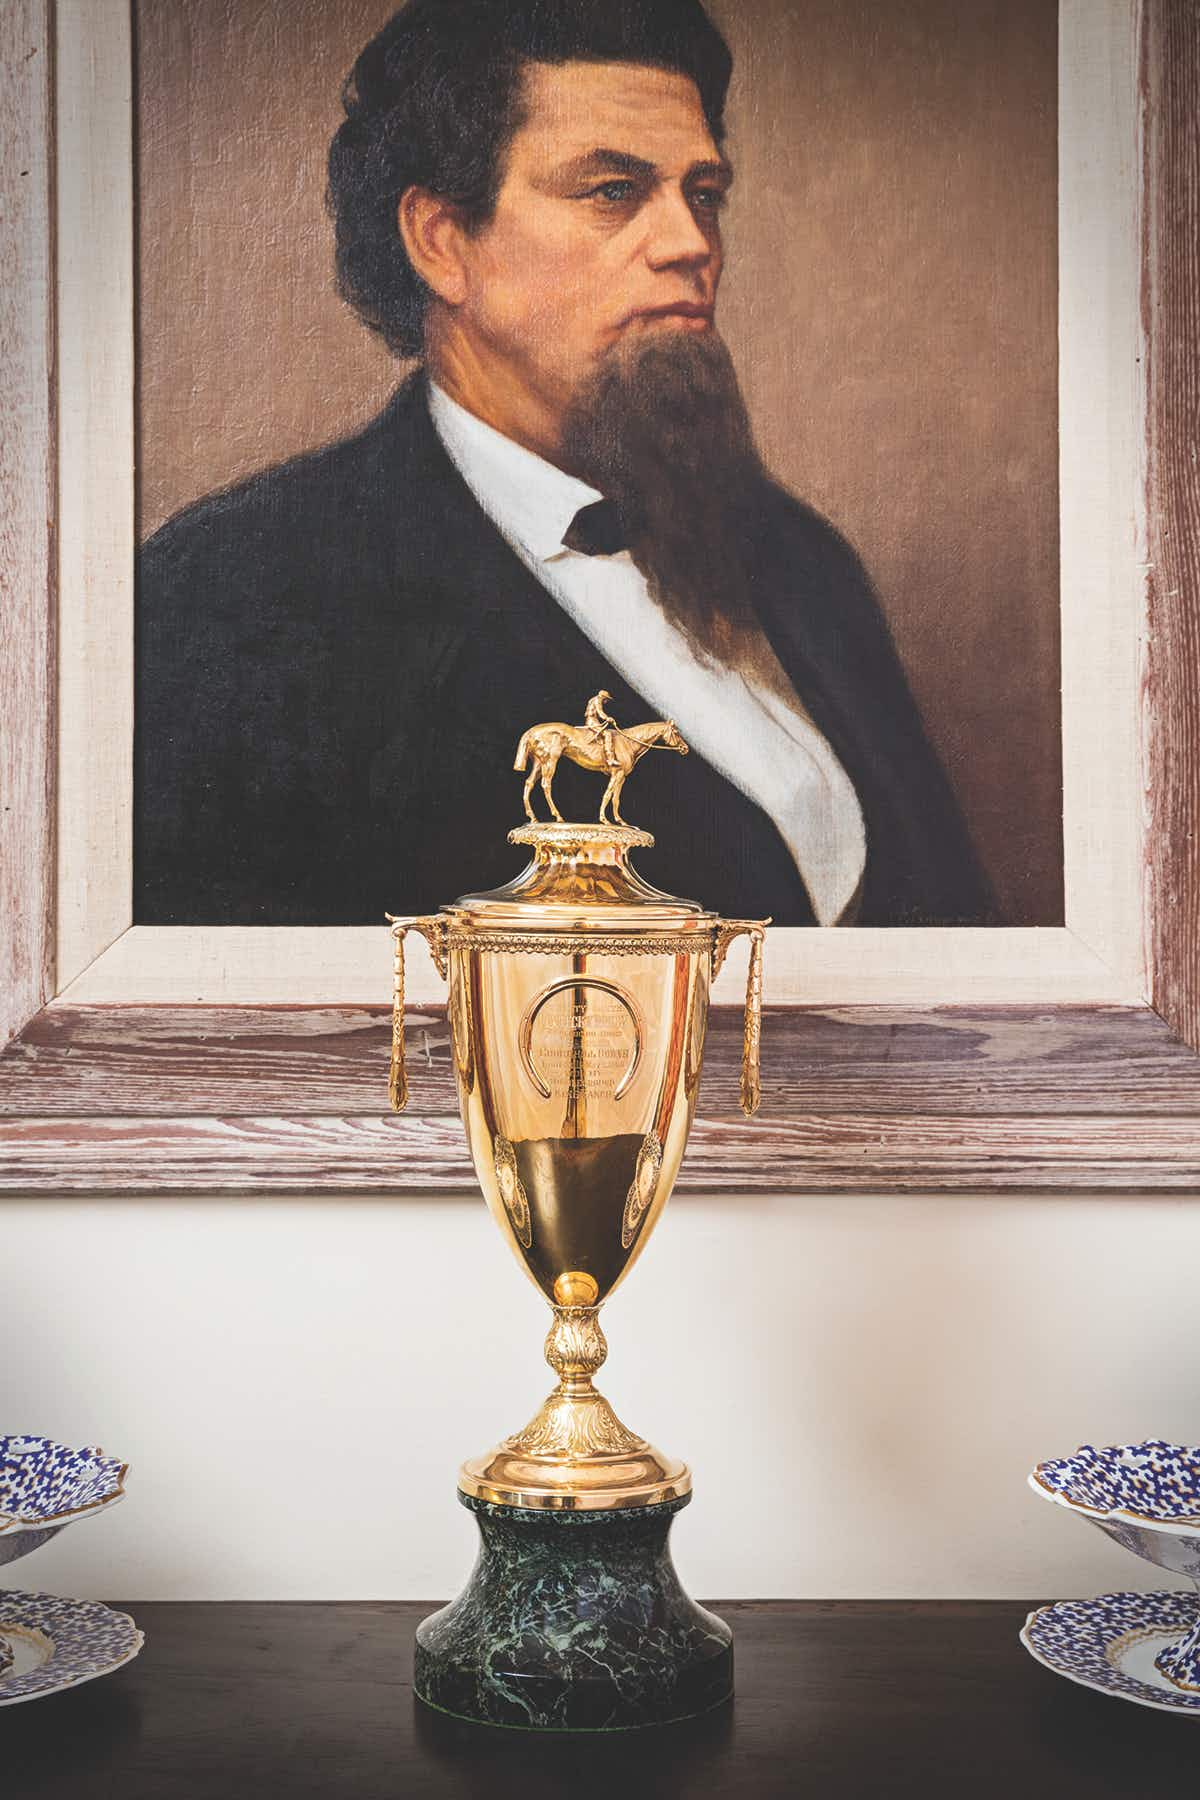 A painting of Captain Richard King hangs above a Kentucky Derby trophy won by one of the family's Thoroughbreds.